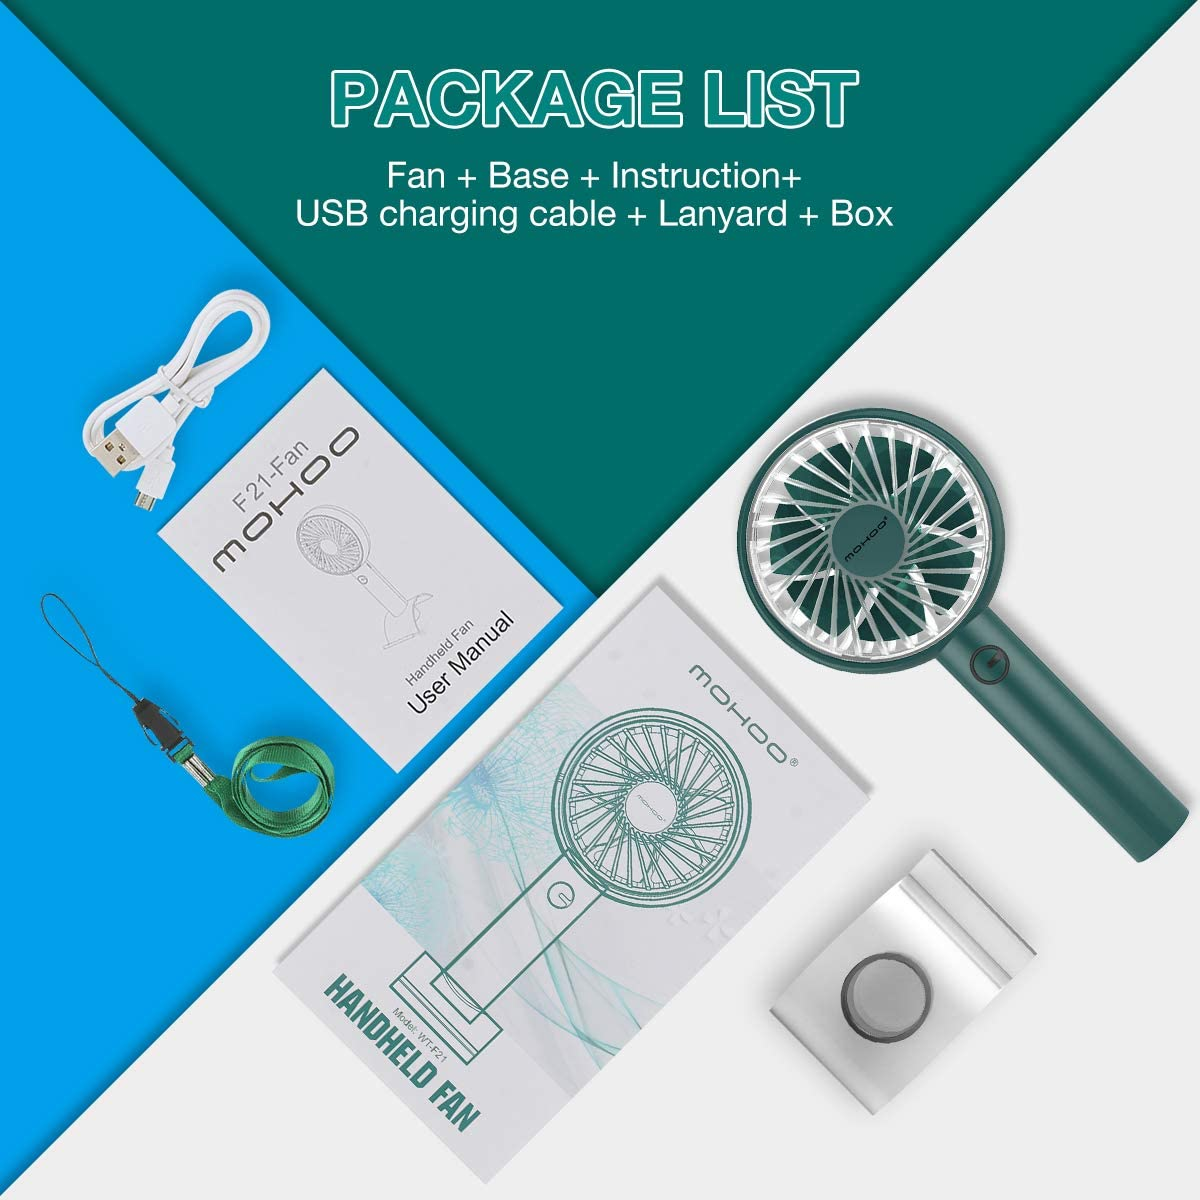 MOHOO Adjustable Angle Hand Fan,Hand Held Fan Portable USB Fan Seven Leaf Handheld Fan 4 Speeds Rechargeable Battery Operated Electric Fan with Phone Base for Home Office Travel